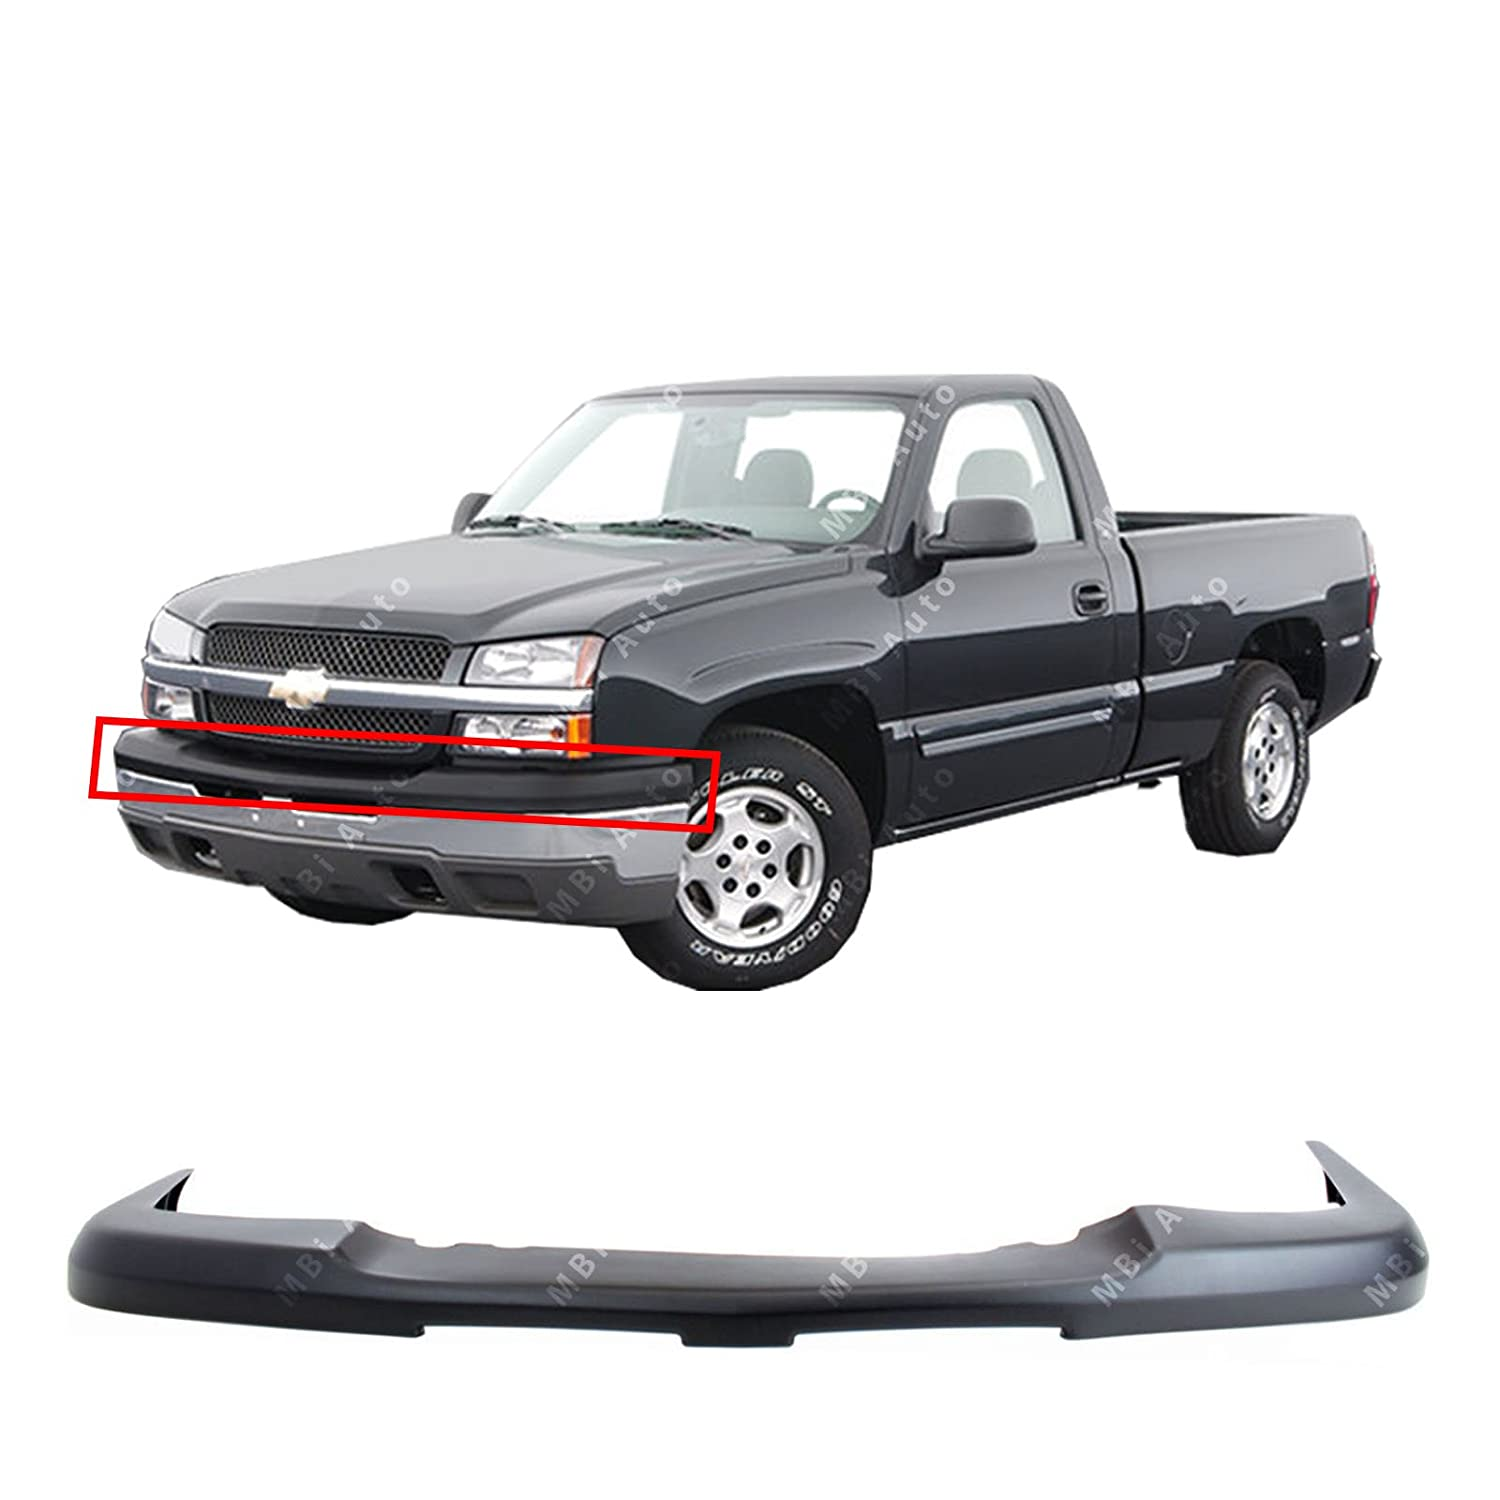 MBI AUTO - Textured, Black Front Upper Bumper Top Cover for 2003 2004 2005 2006 Chevy Silverado & Avalanche 03-06, GM1051110